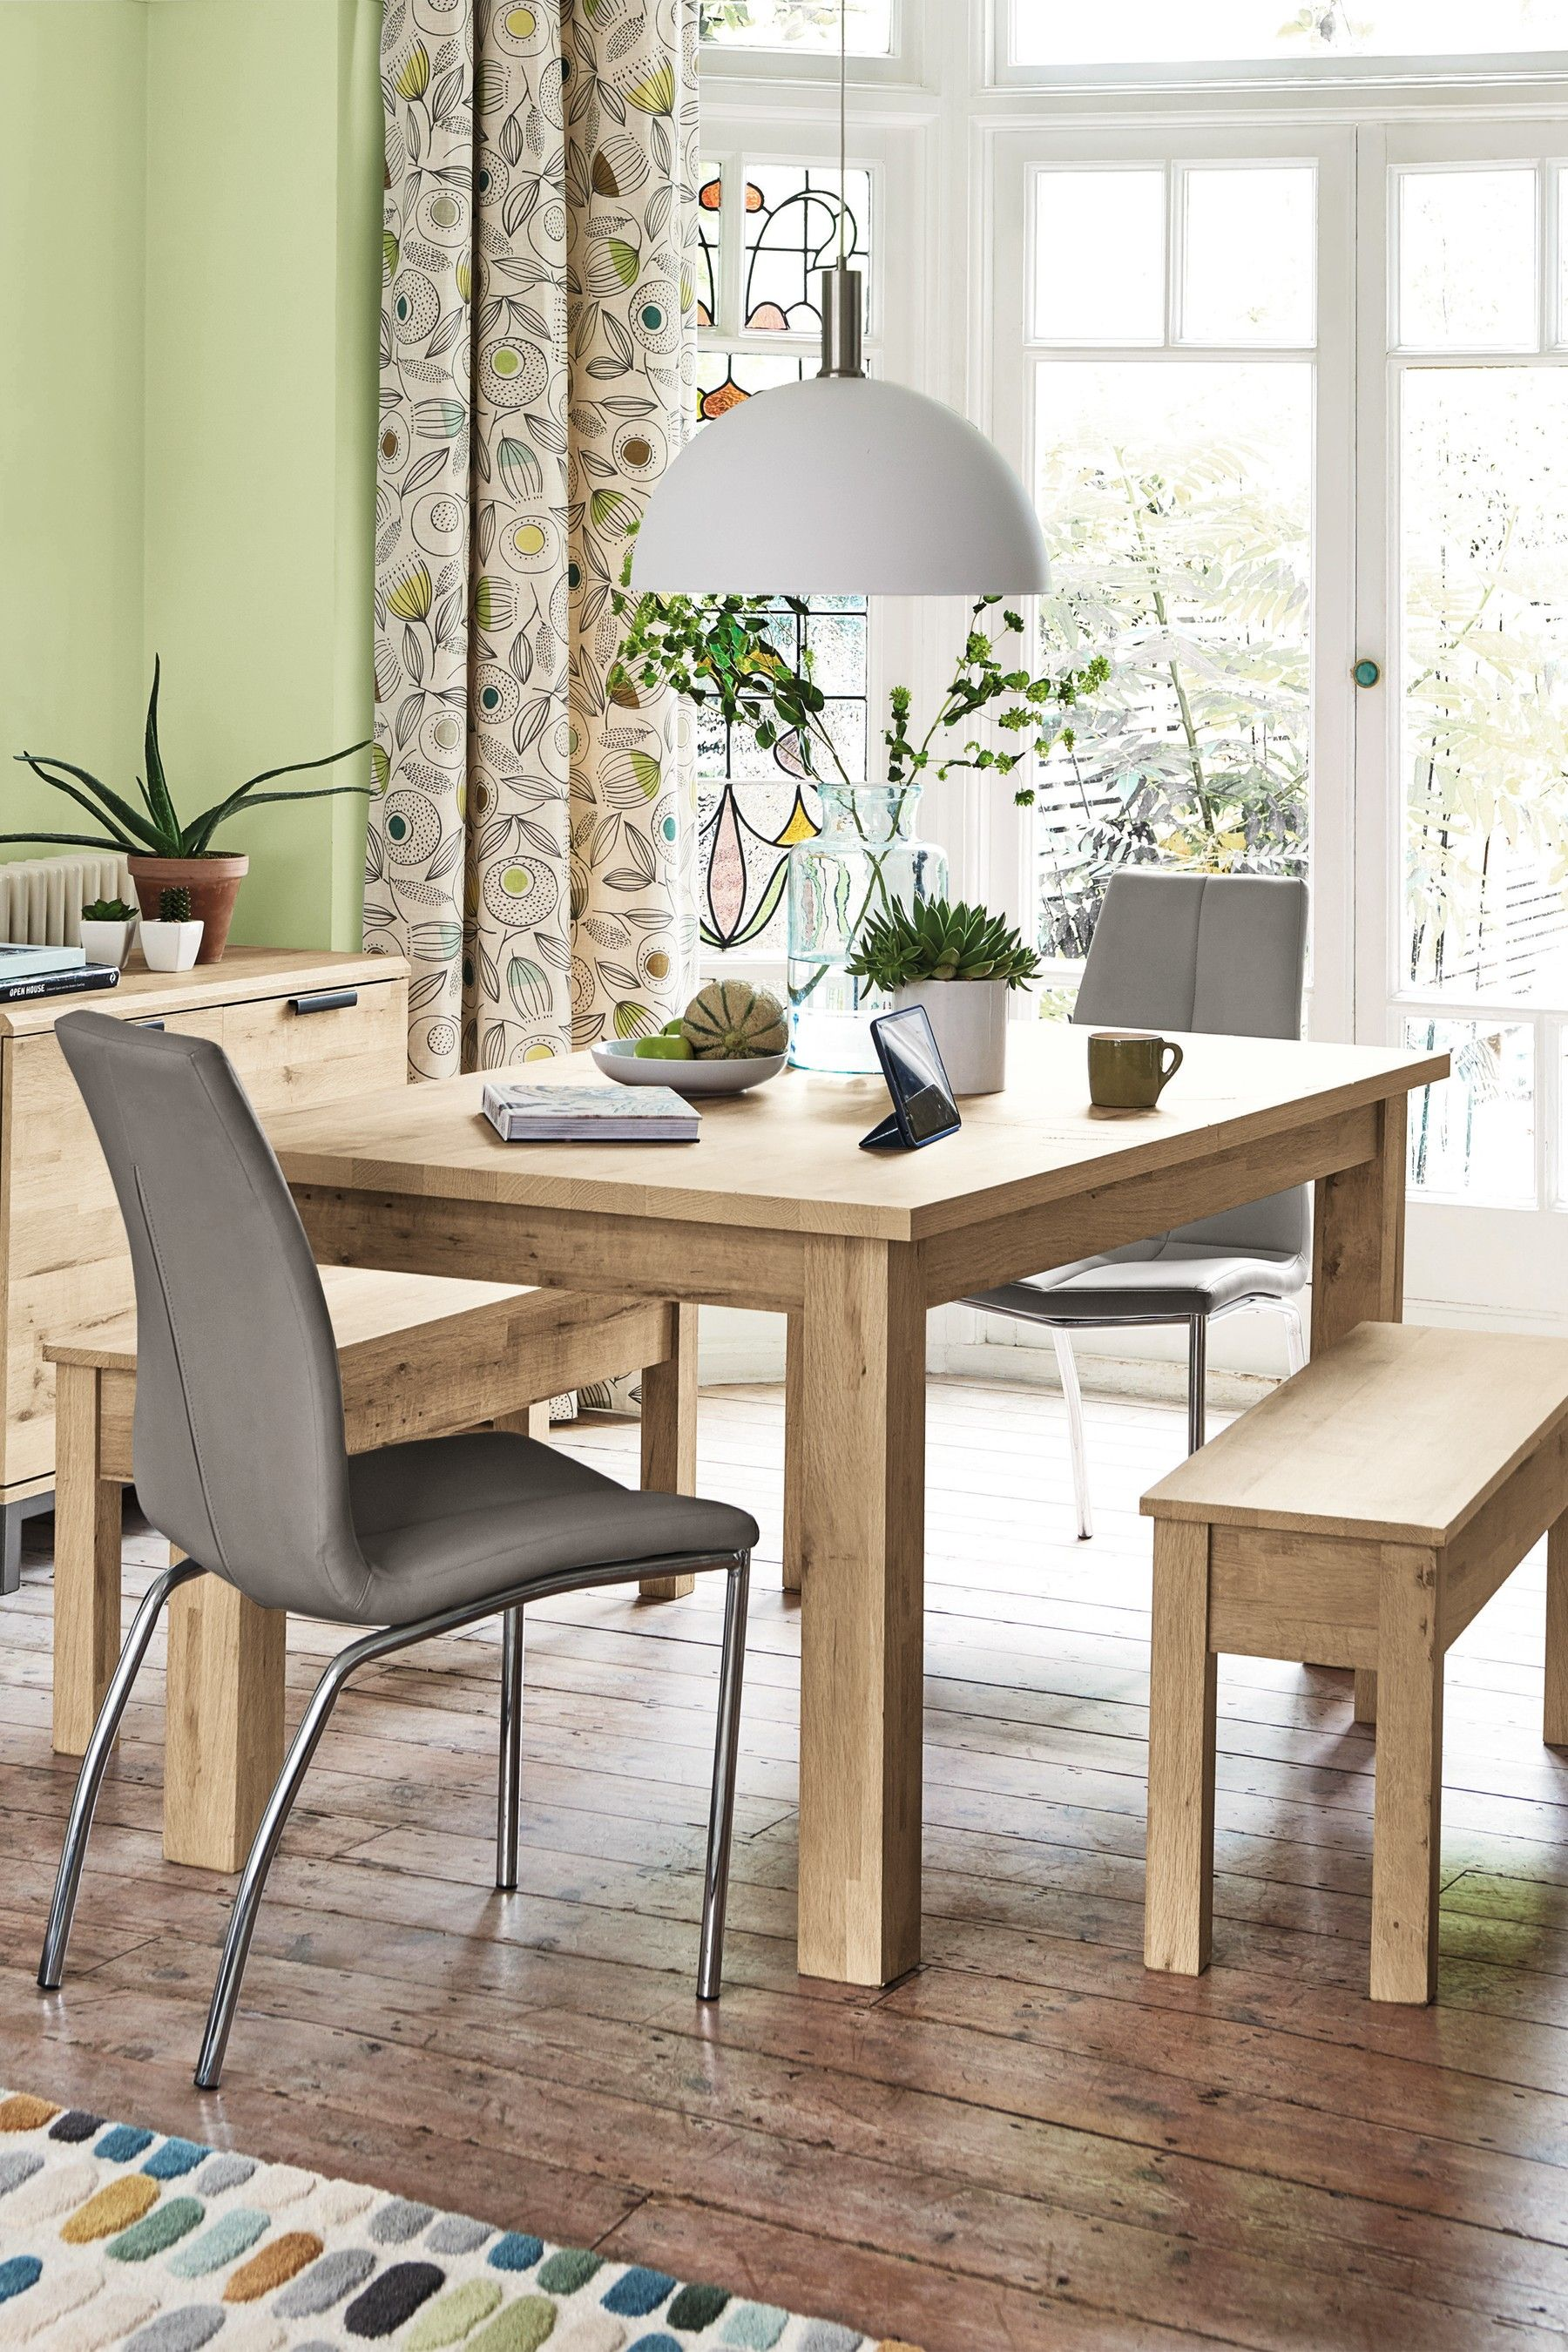 c35c6d733f0 Next Bronx Light Dining Table And Bench Set - Natural